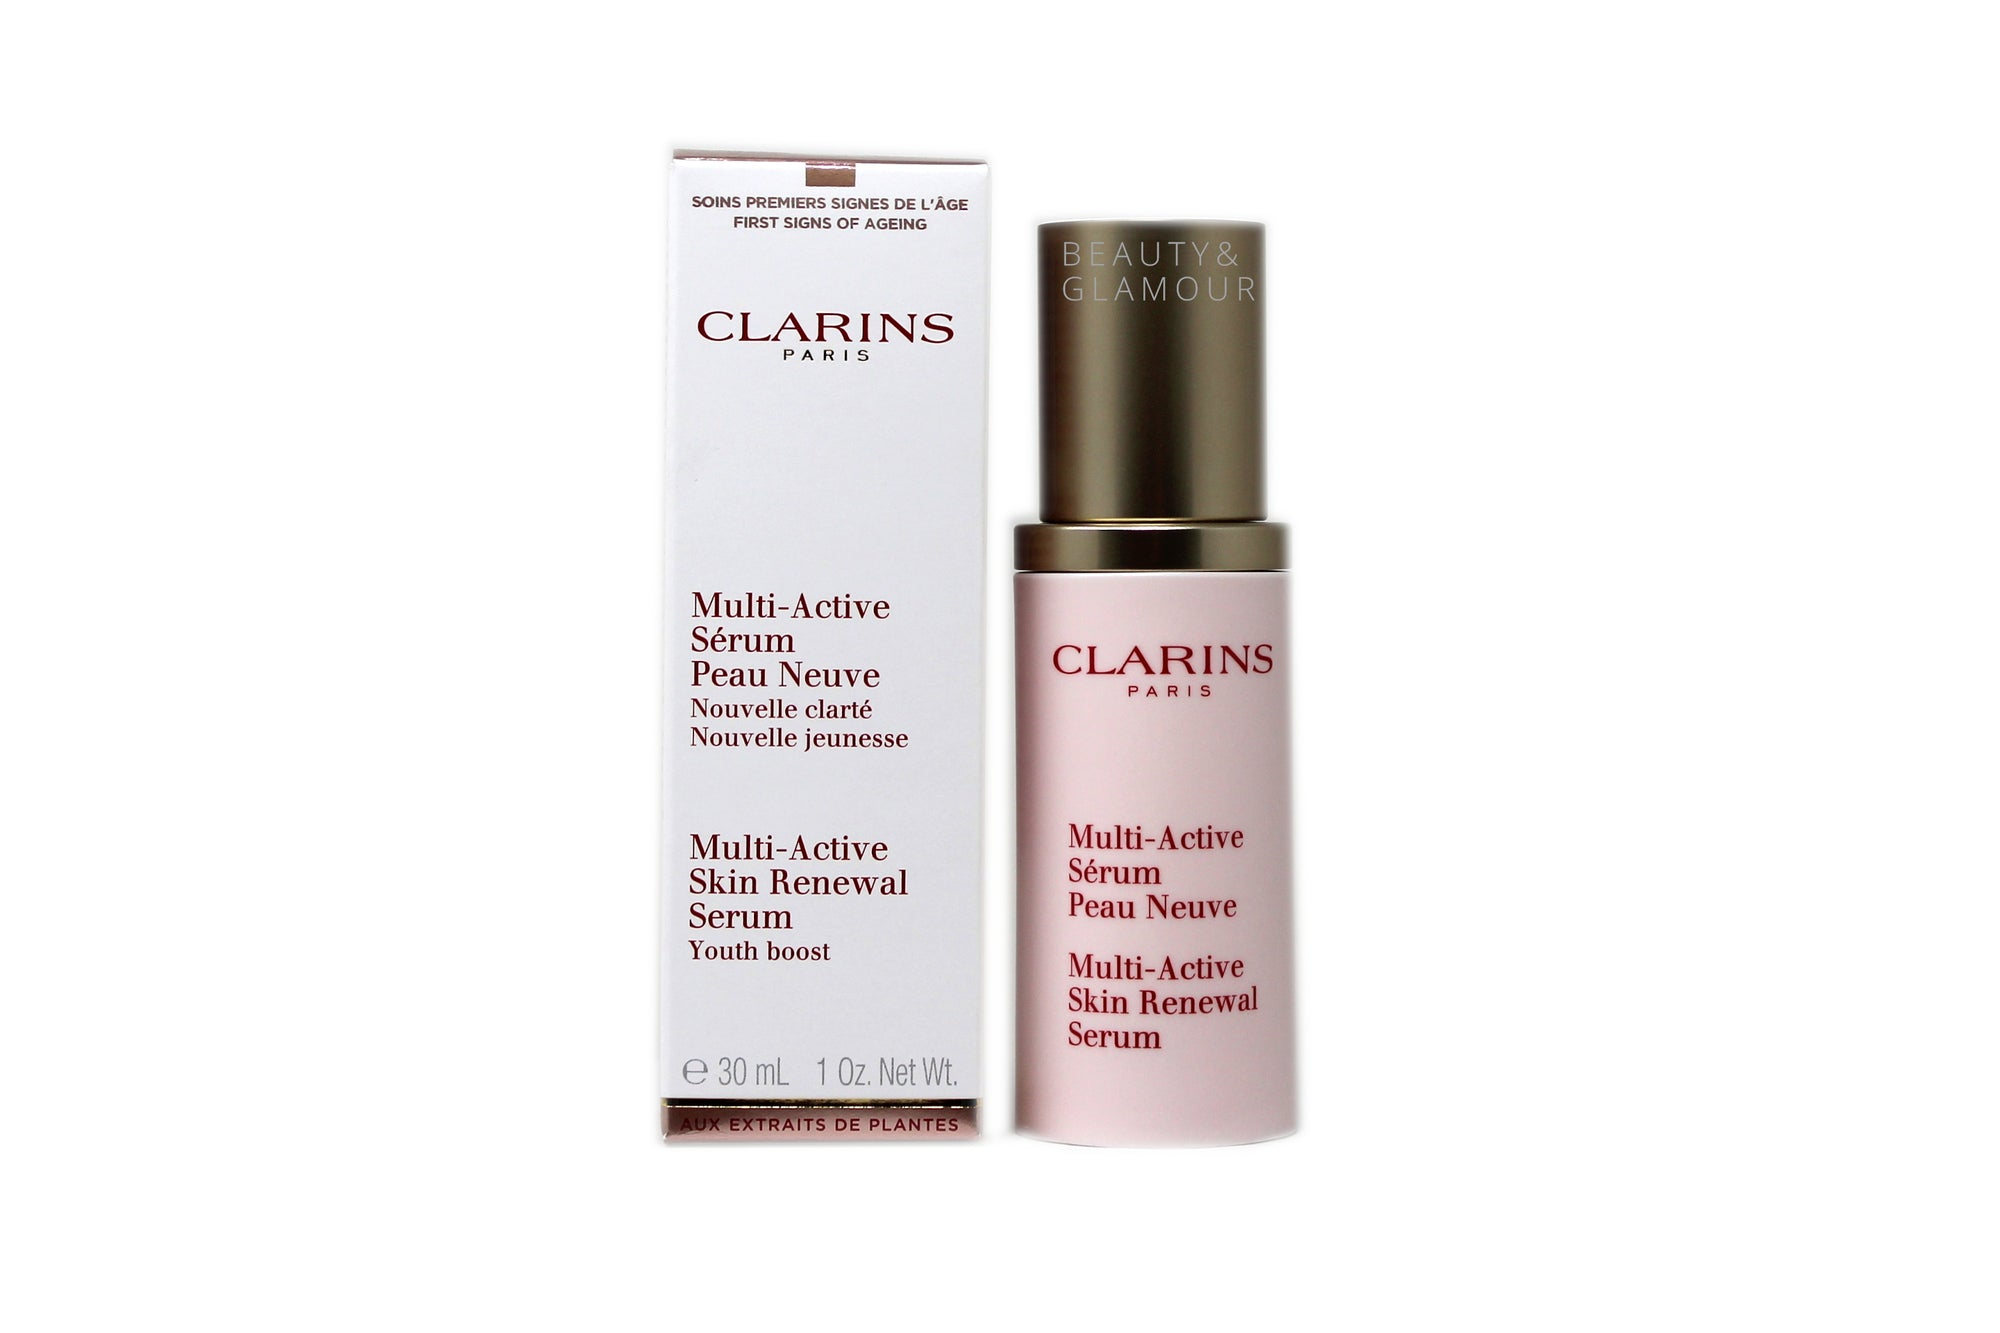 CLARINS MULTI-ACTIVE SKIN RENEWAL SERUM YOUTH BOOST AVAILABLE SIZE: 30 ML/1 FL.OZ